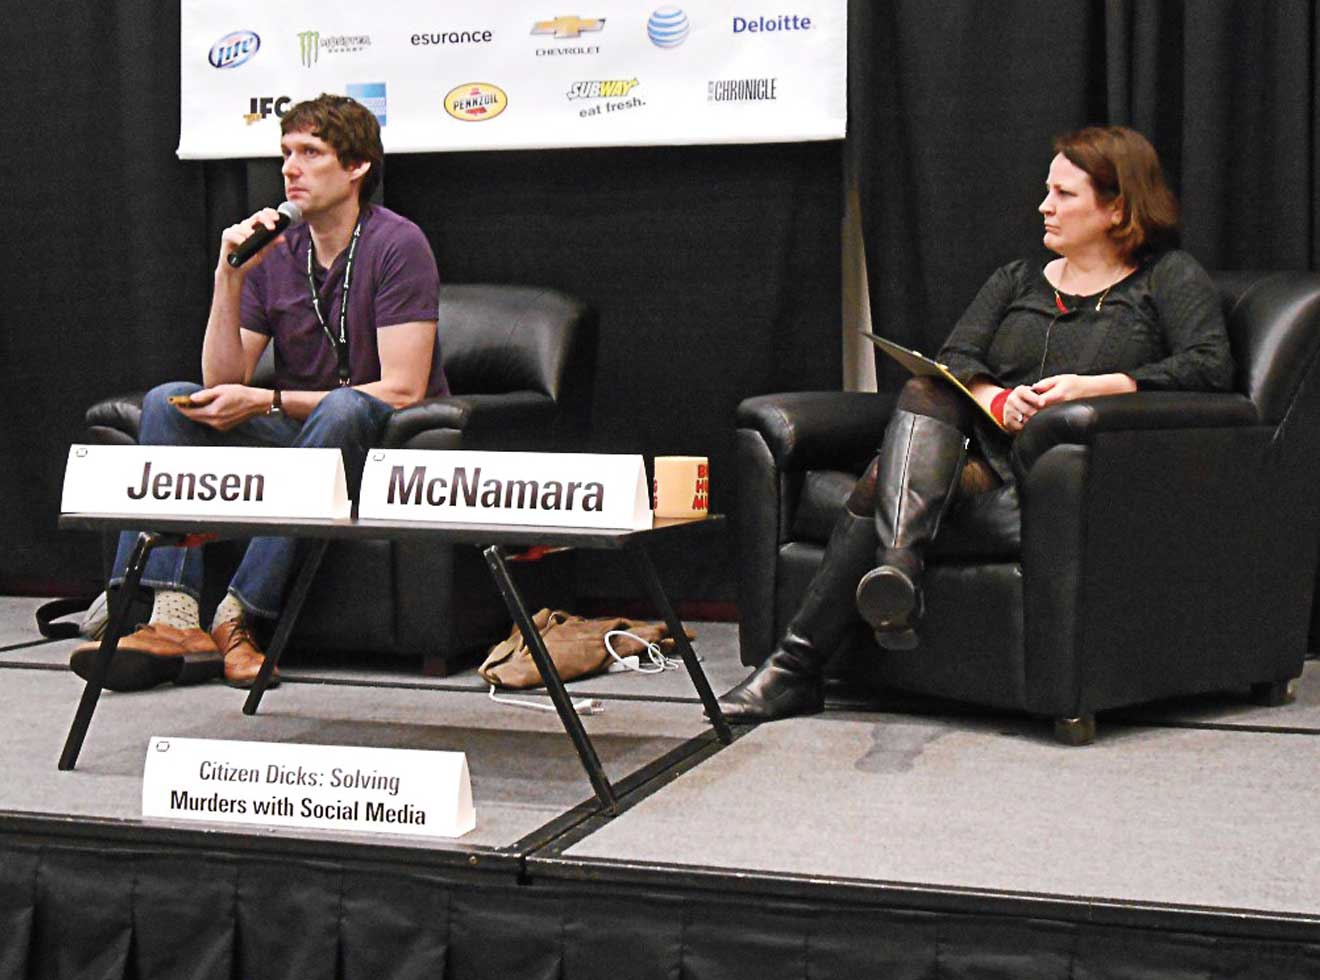 Billy Jensen and the late author Michelle McNamara, seen here at the South by Southwest conference, in 2014.